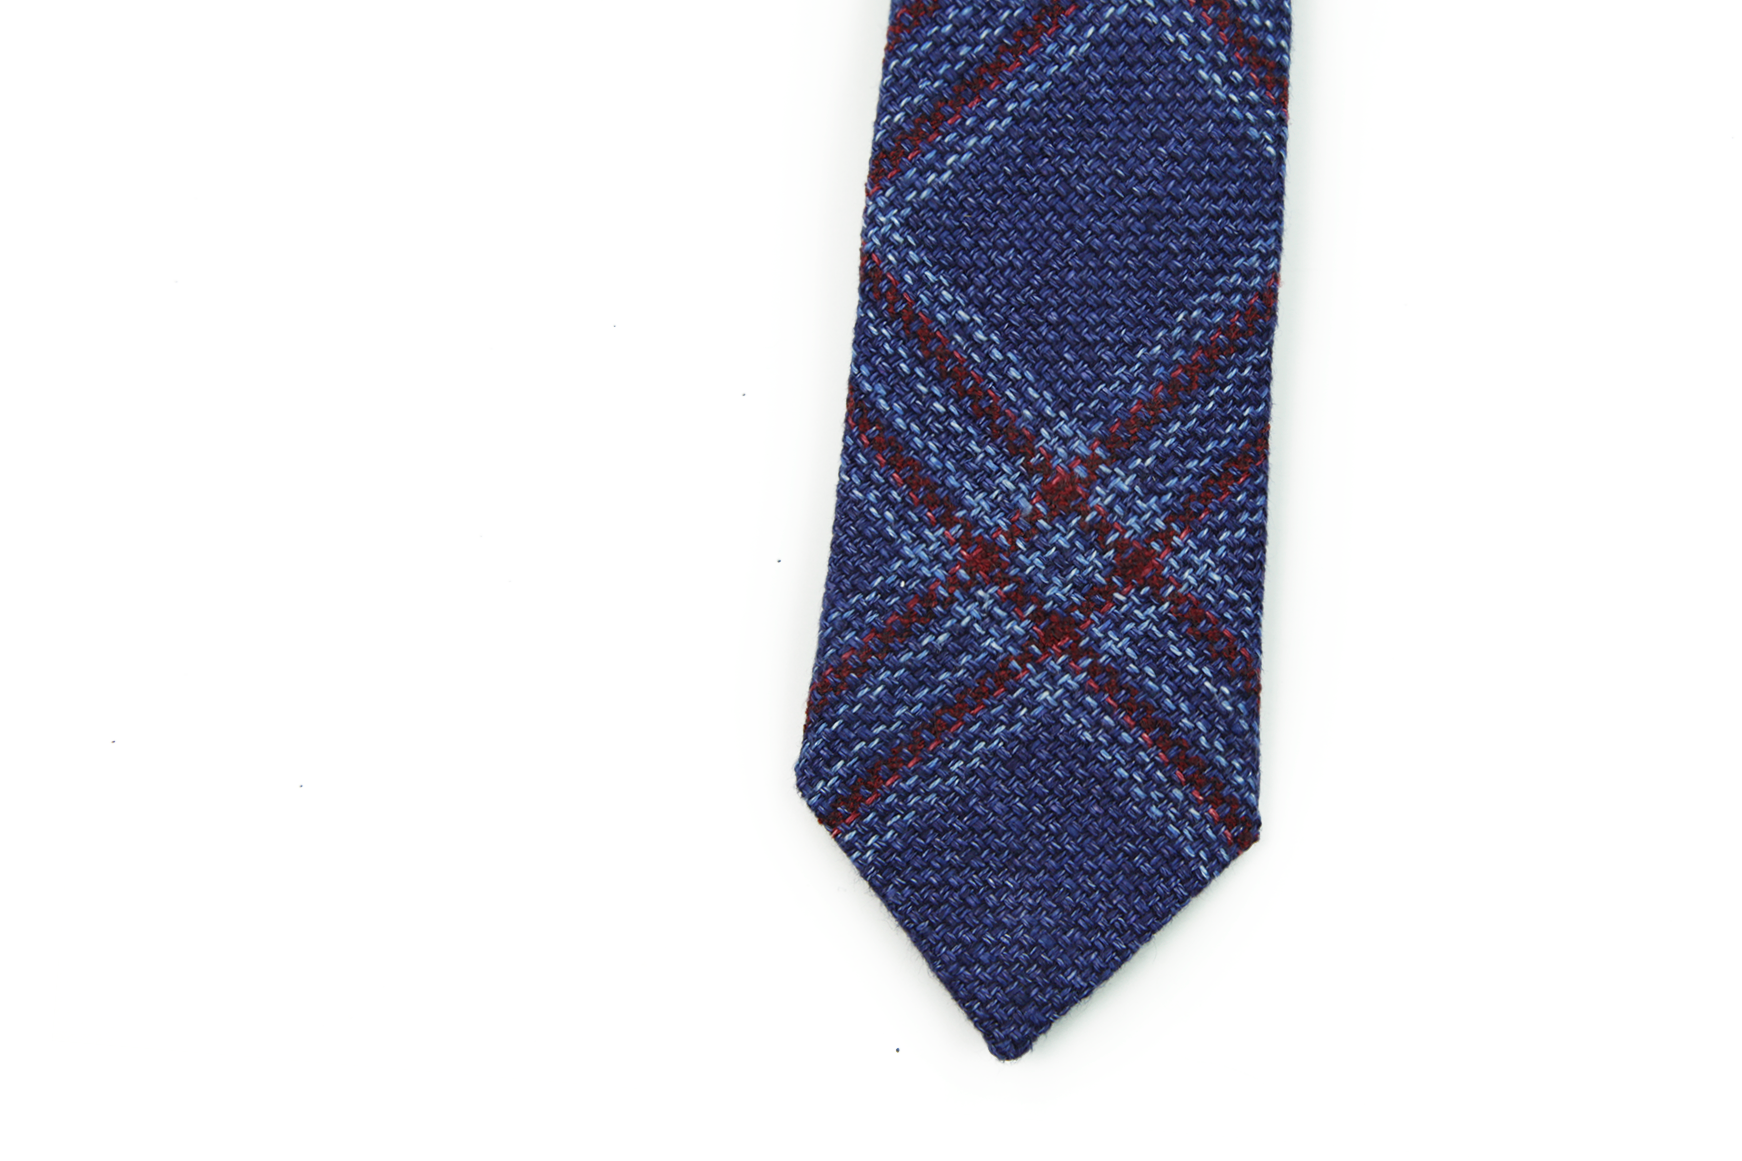 The Loren Necktie